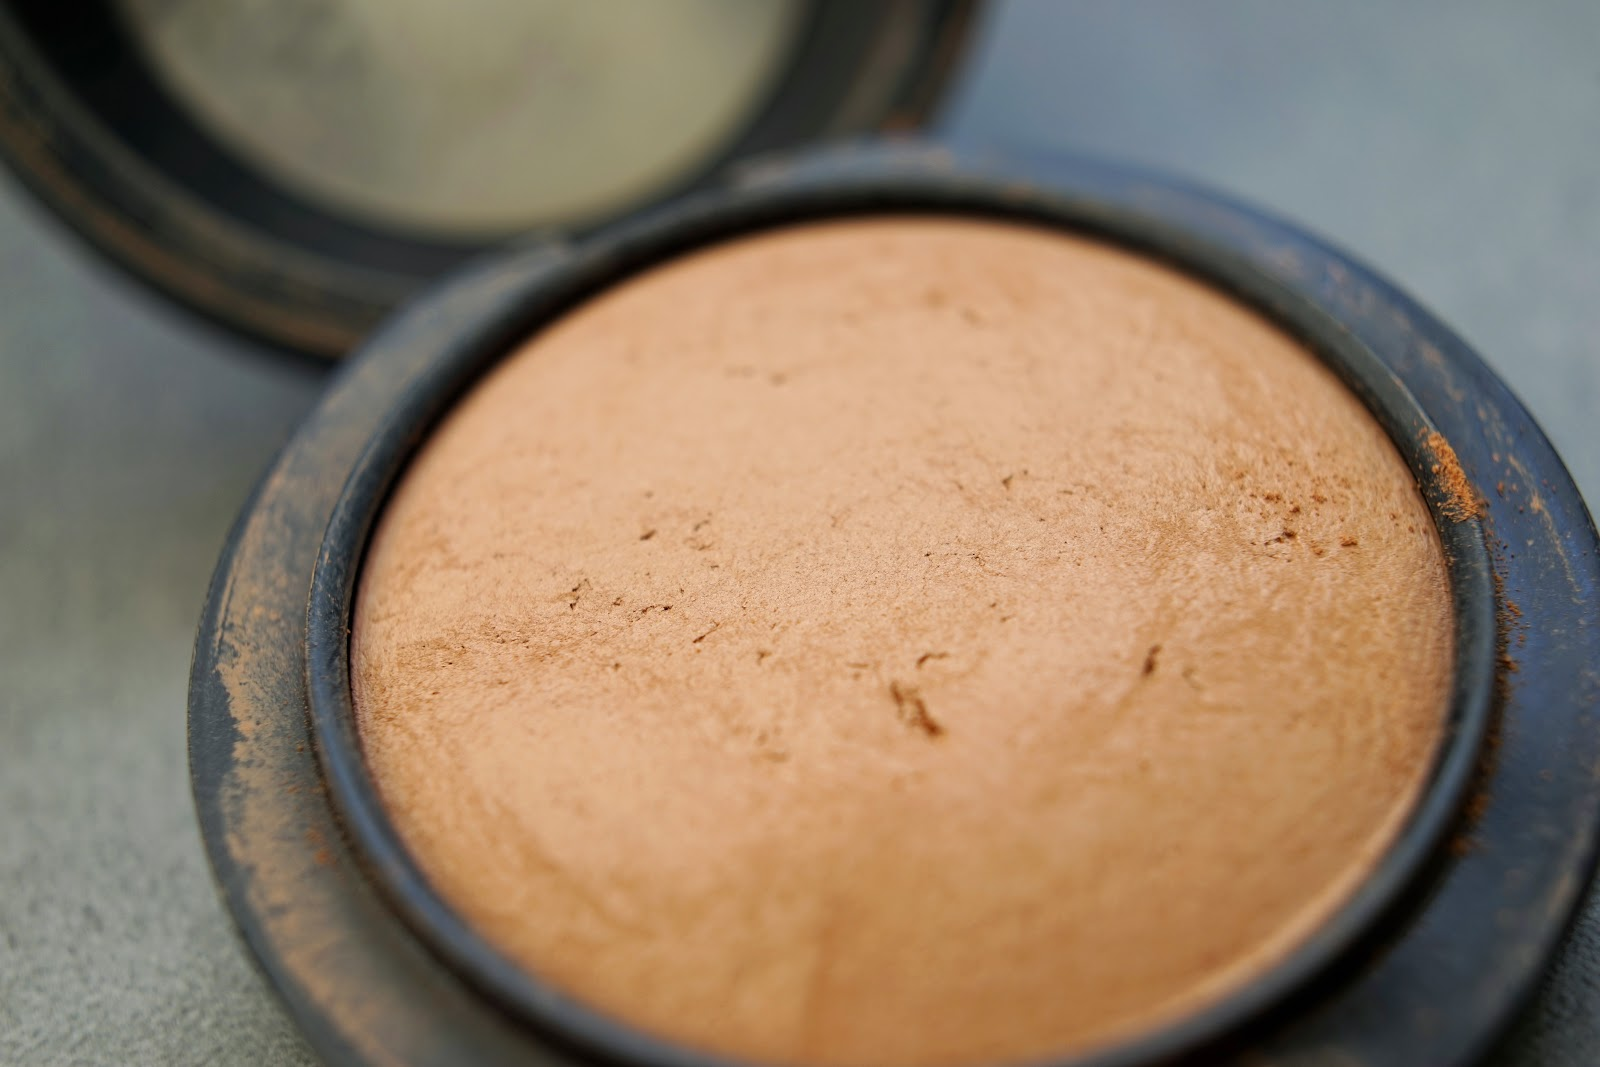 mac medium to dark skin finish natural powder